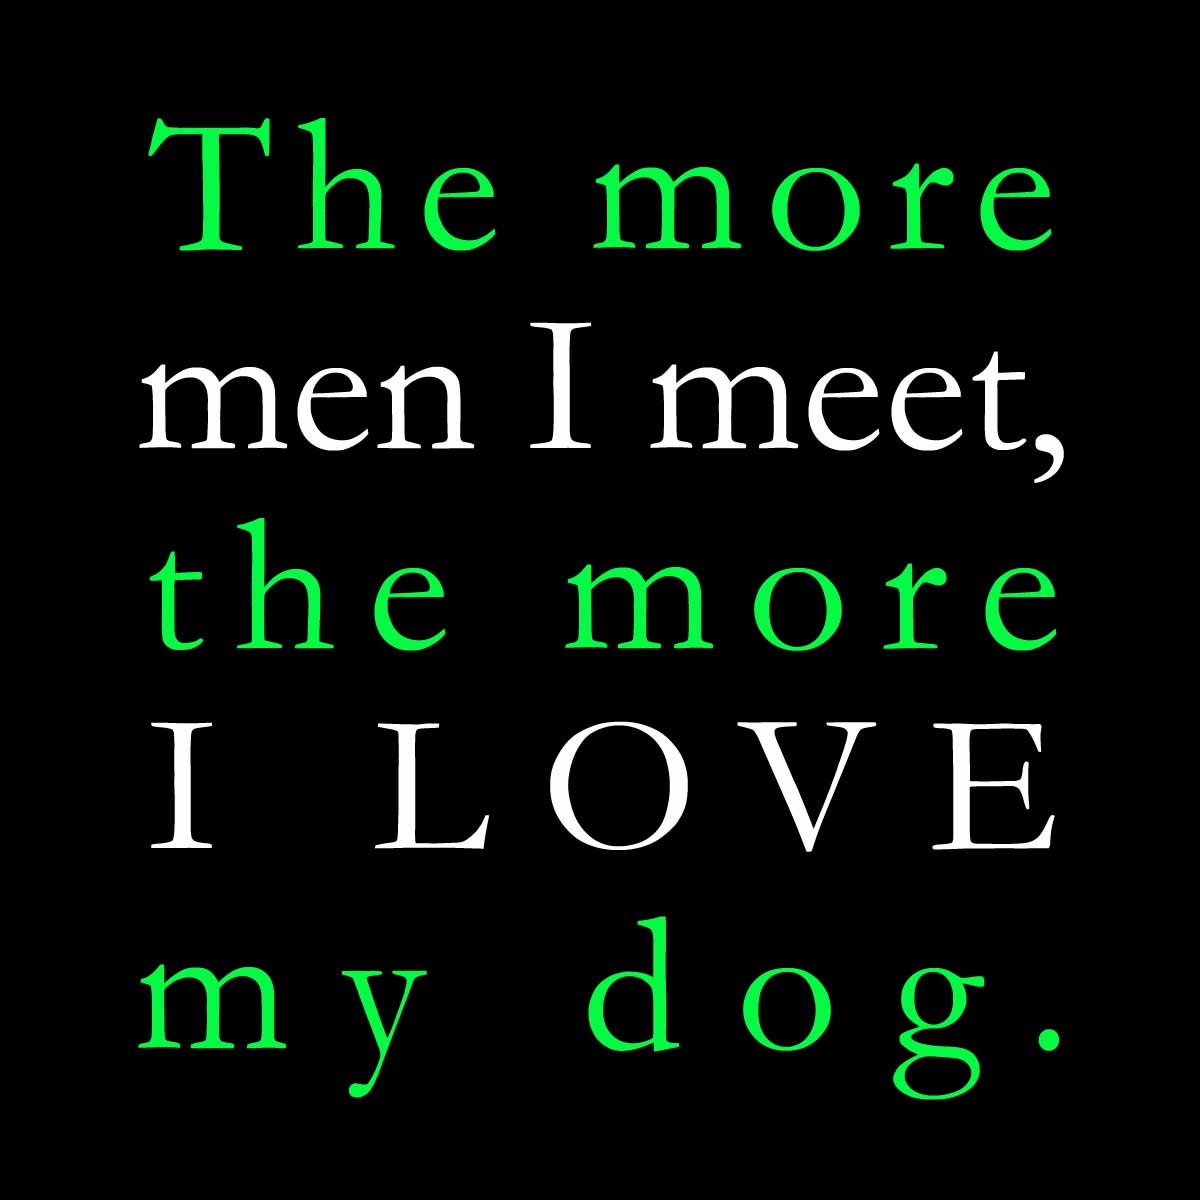 I Love My Dog Quotes I Love My Dog Quotes Endearing Best 25 Love My Dog Ideas On